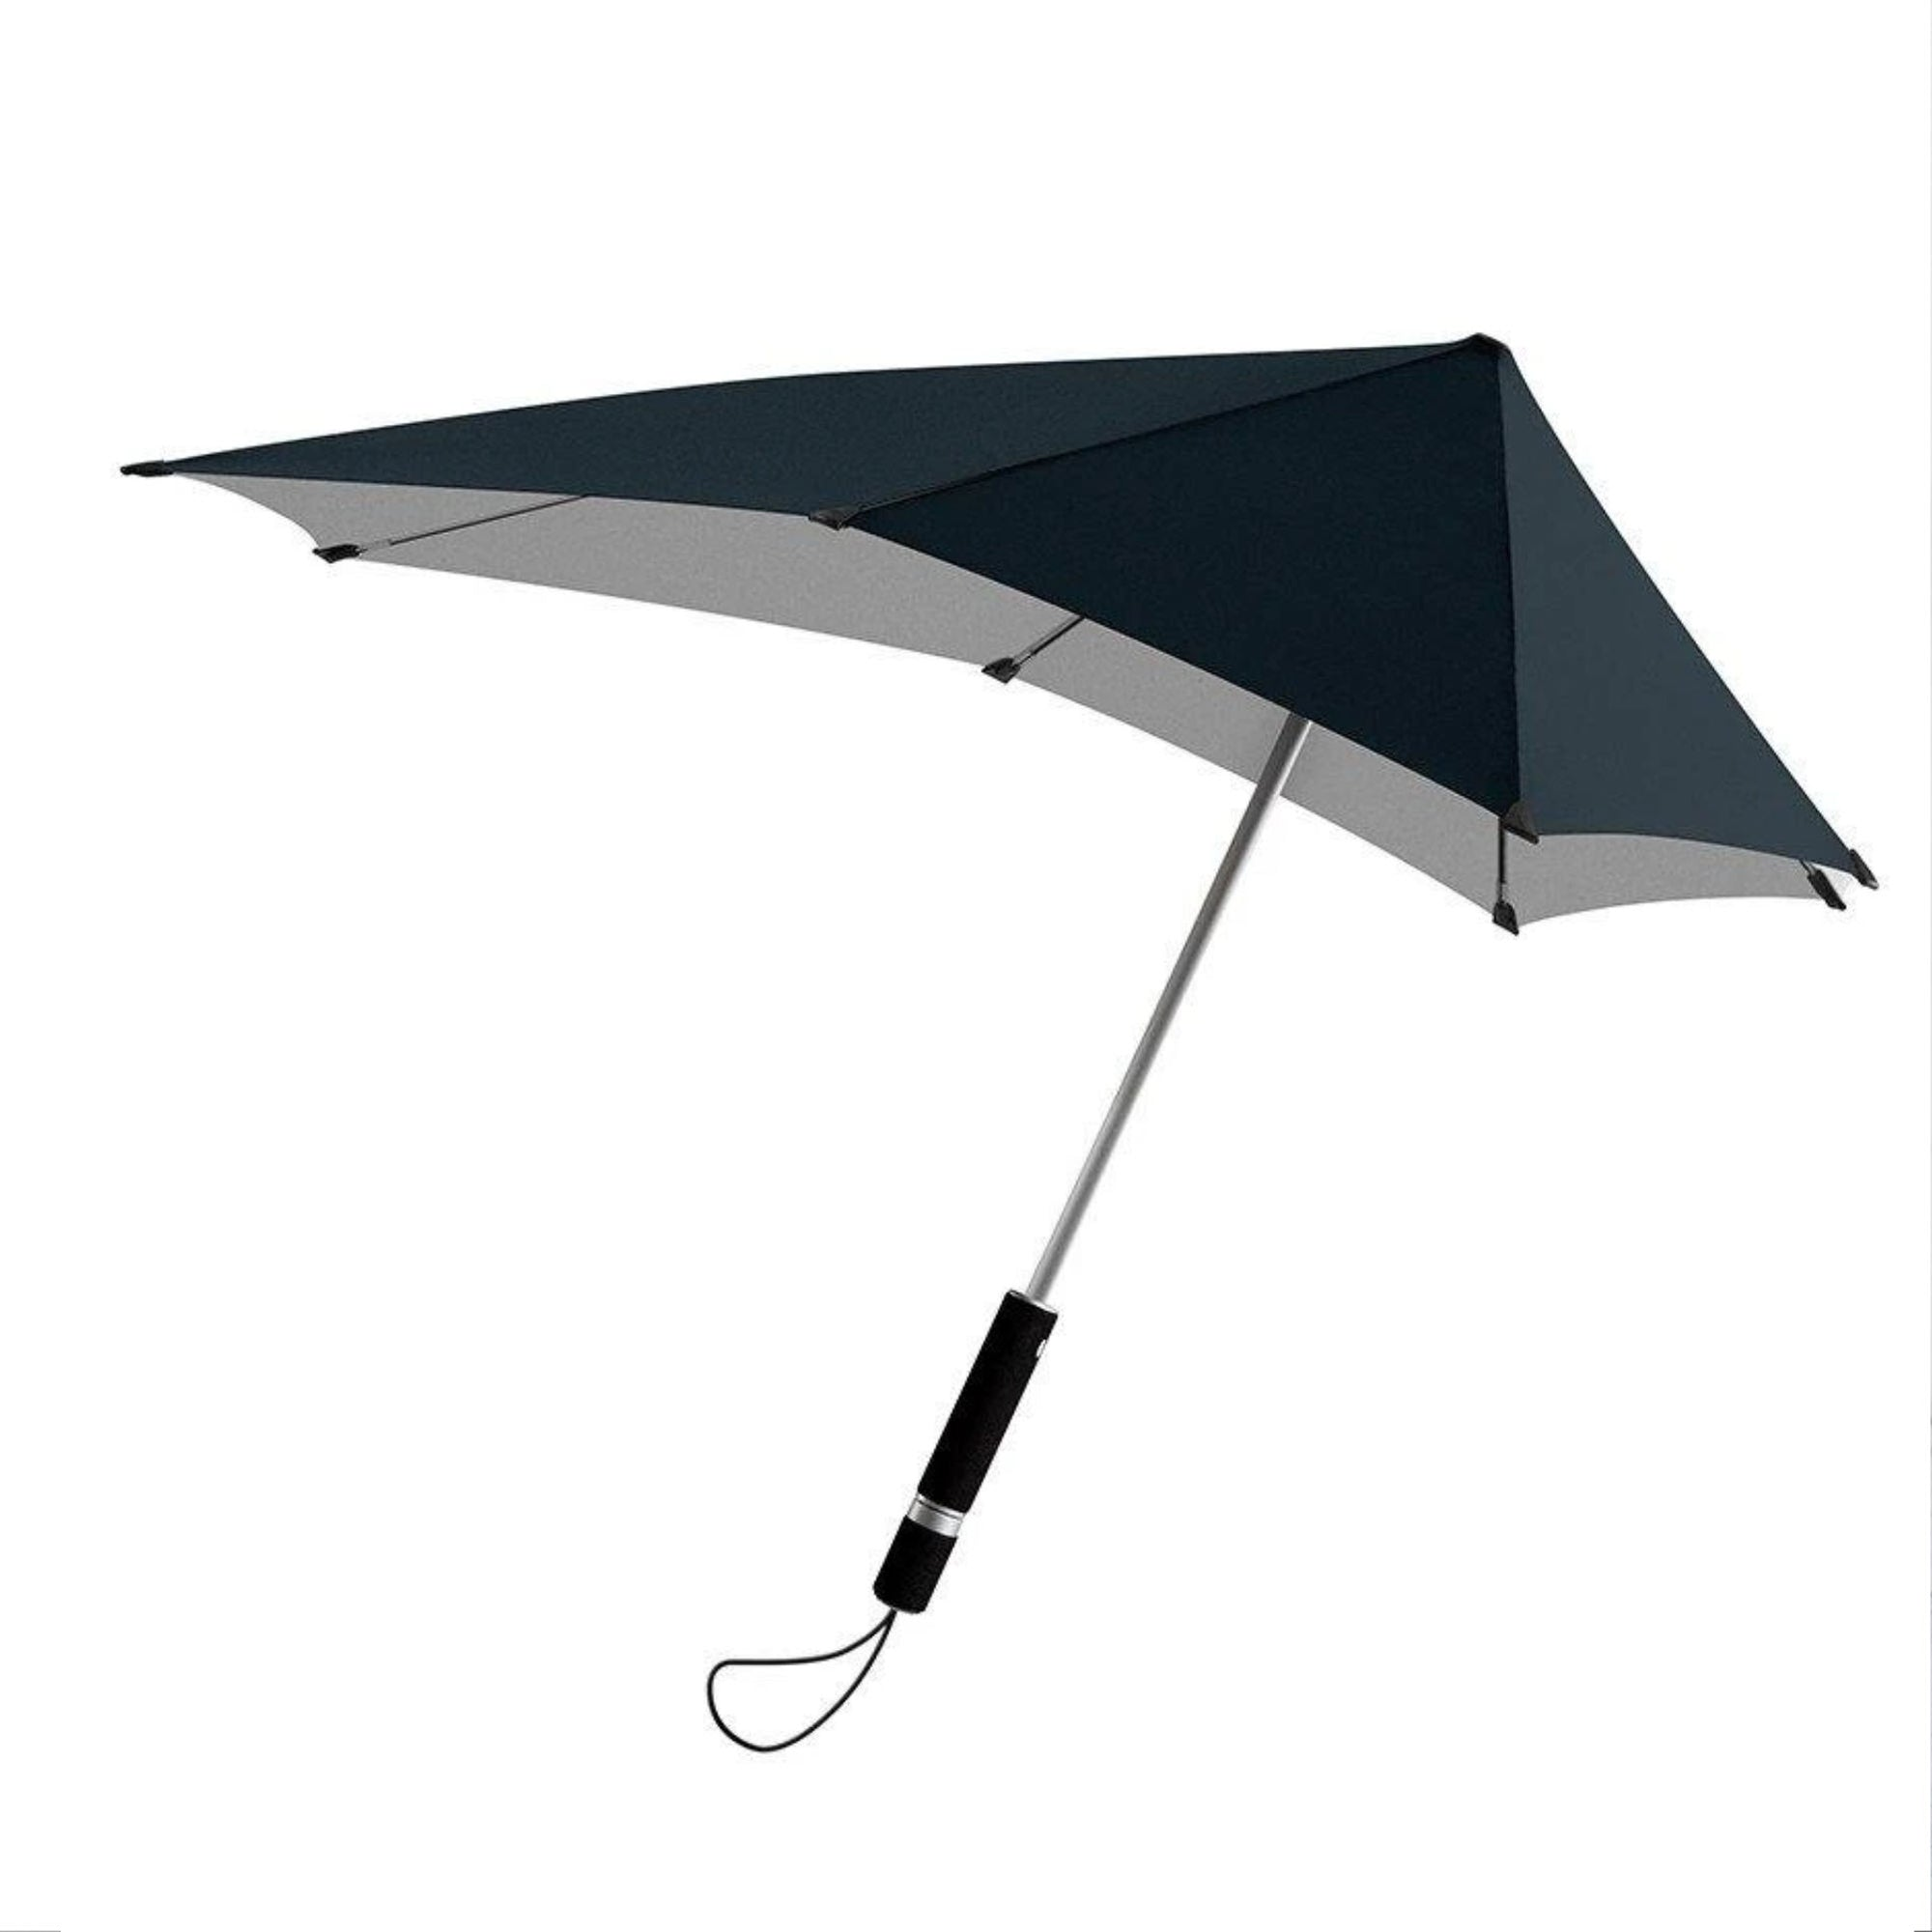 Senz° Original storm umbrella, full moon